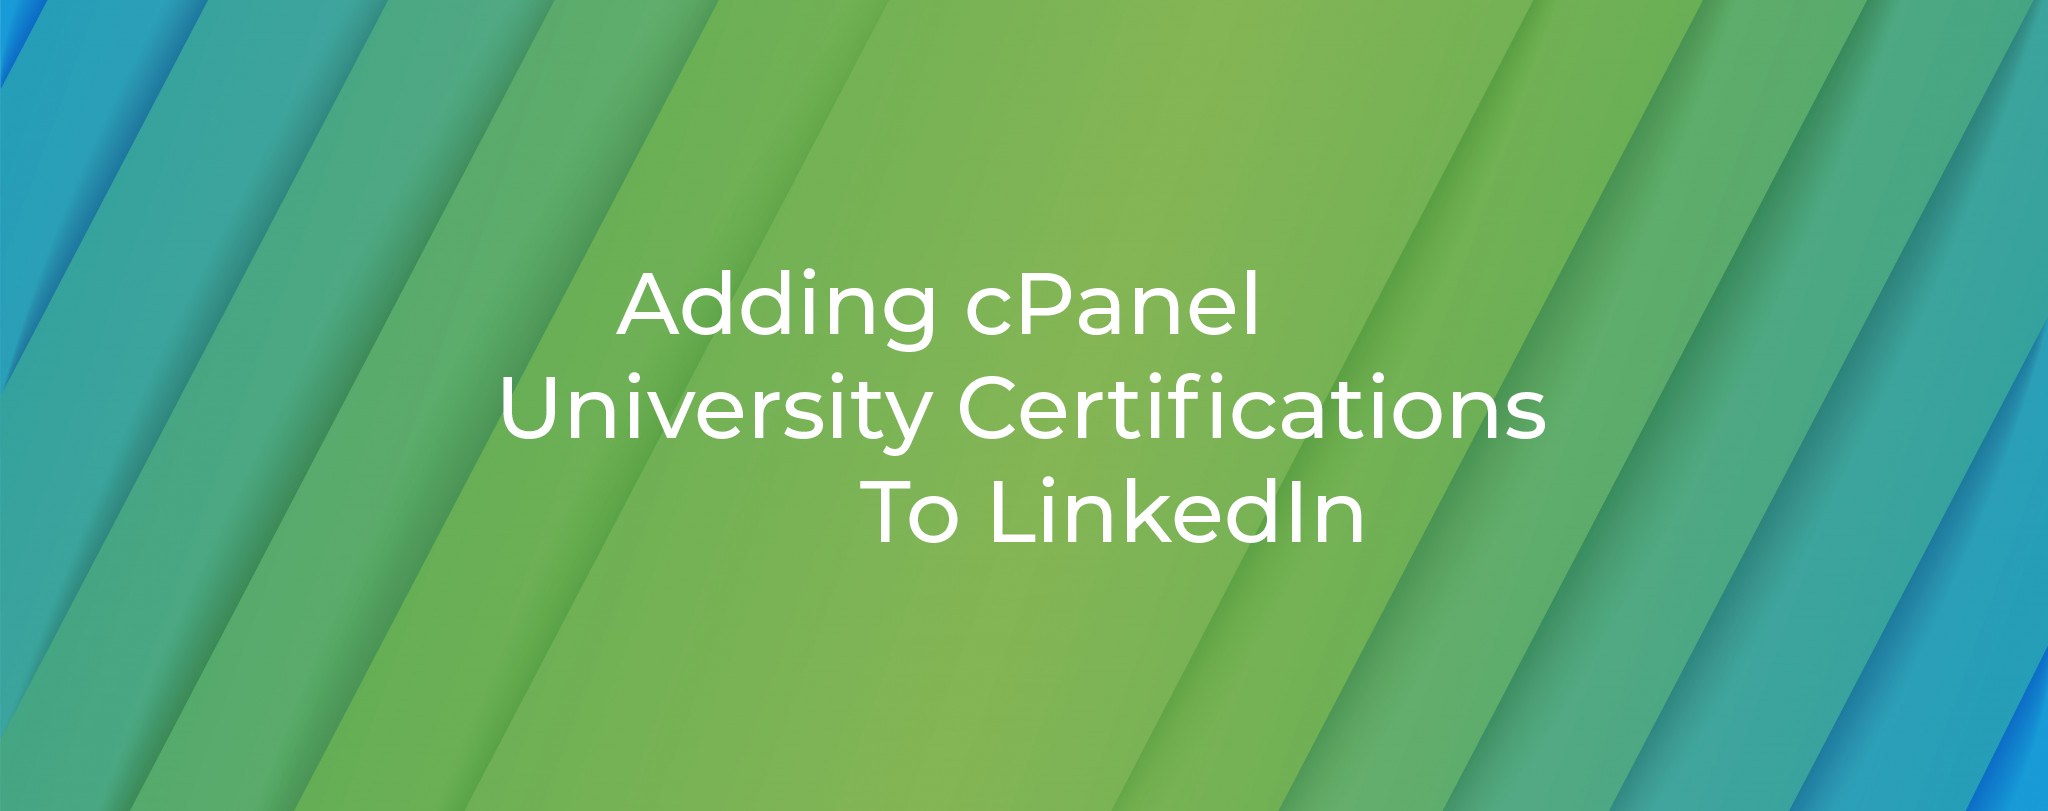 Adding cPanel University Certificates To LinkedIn